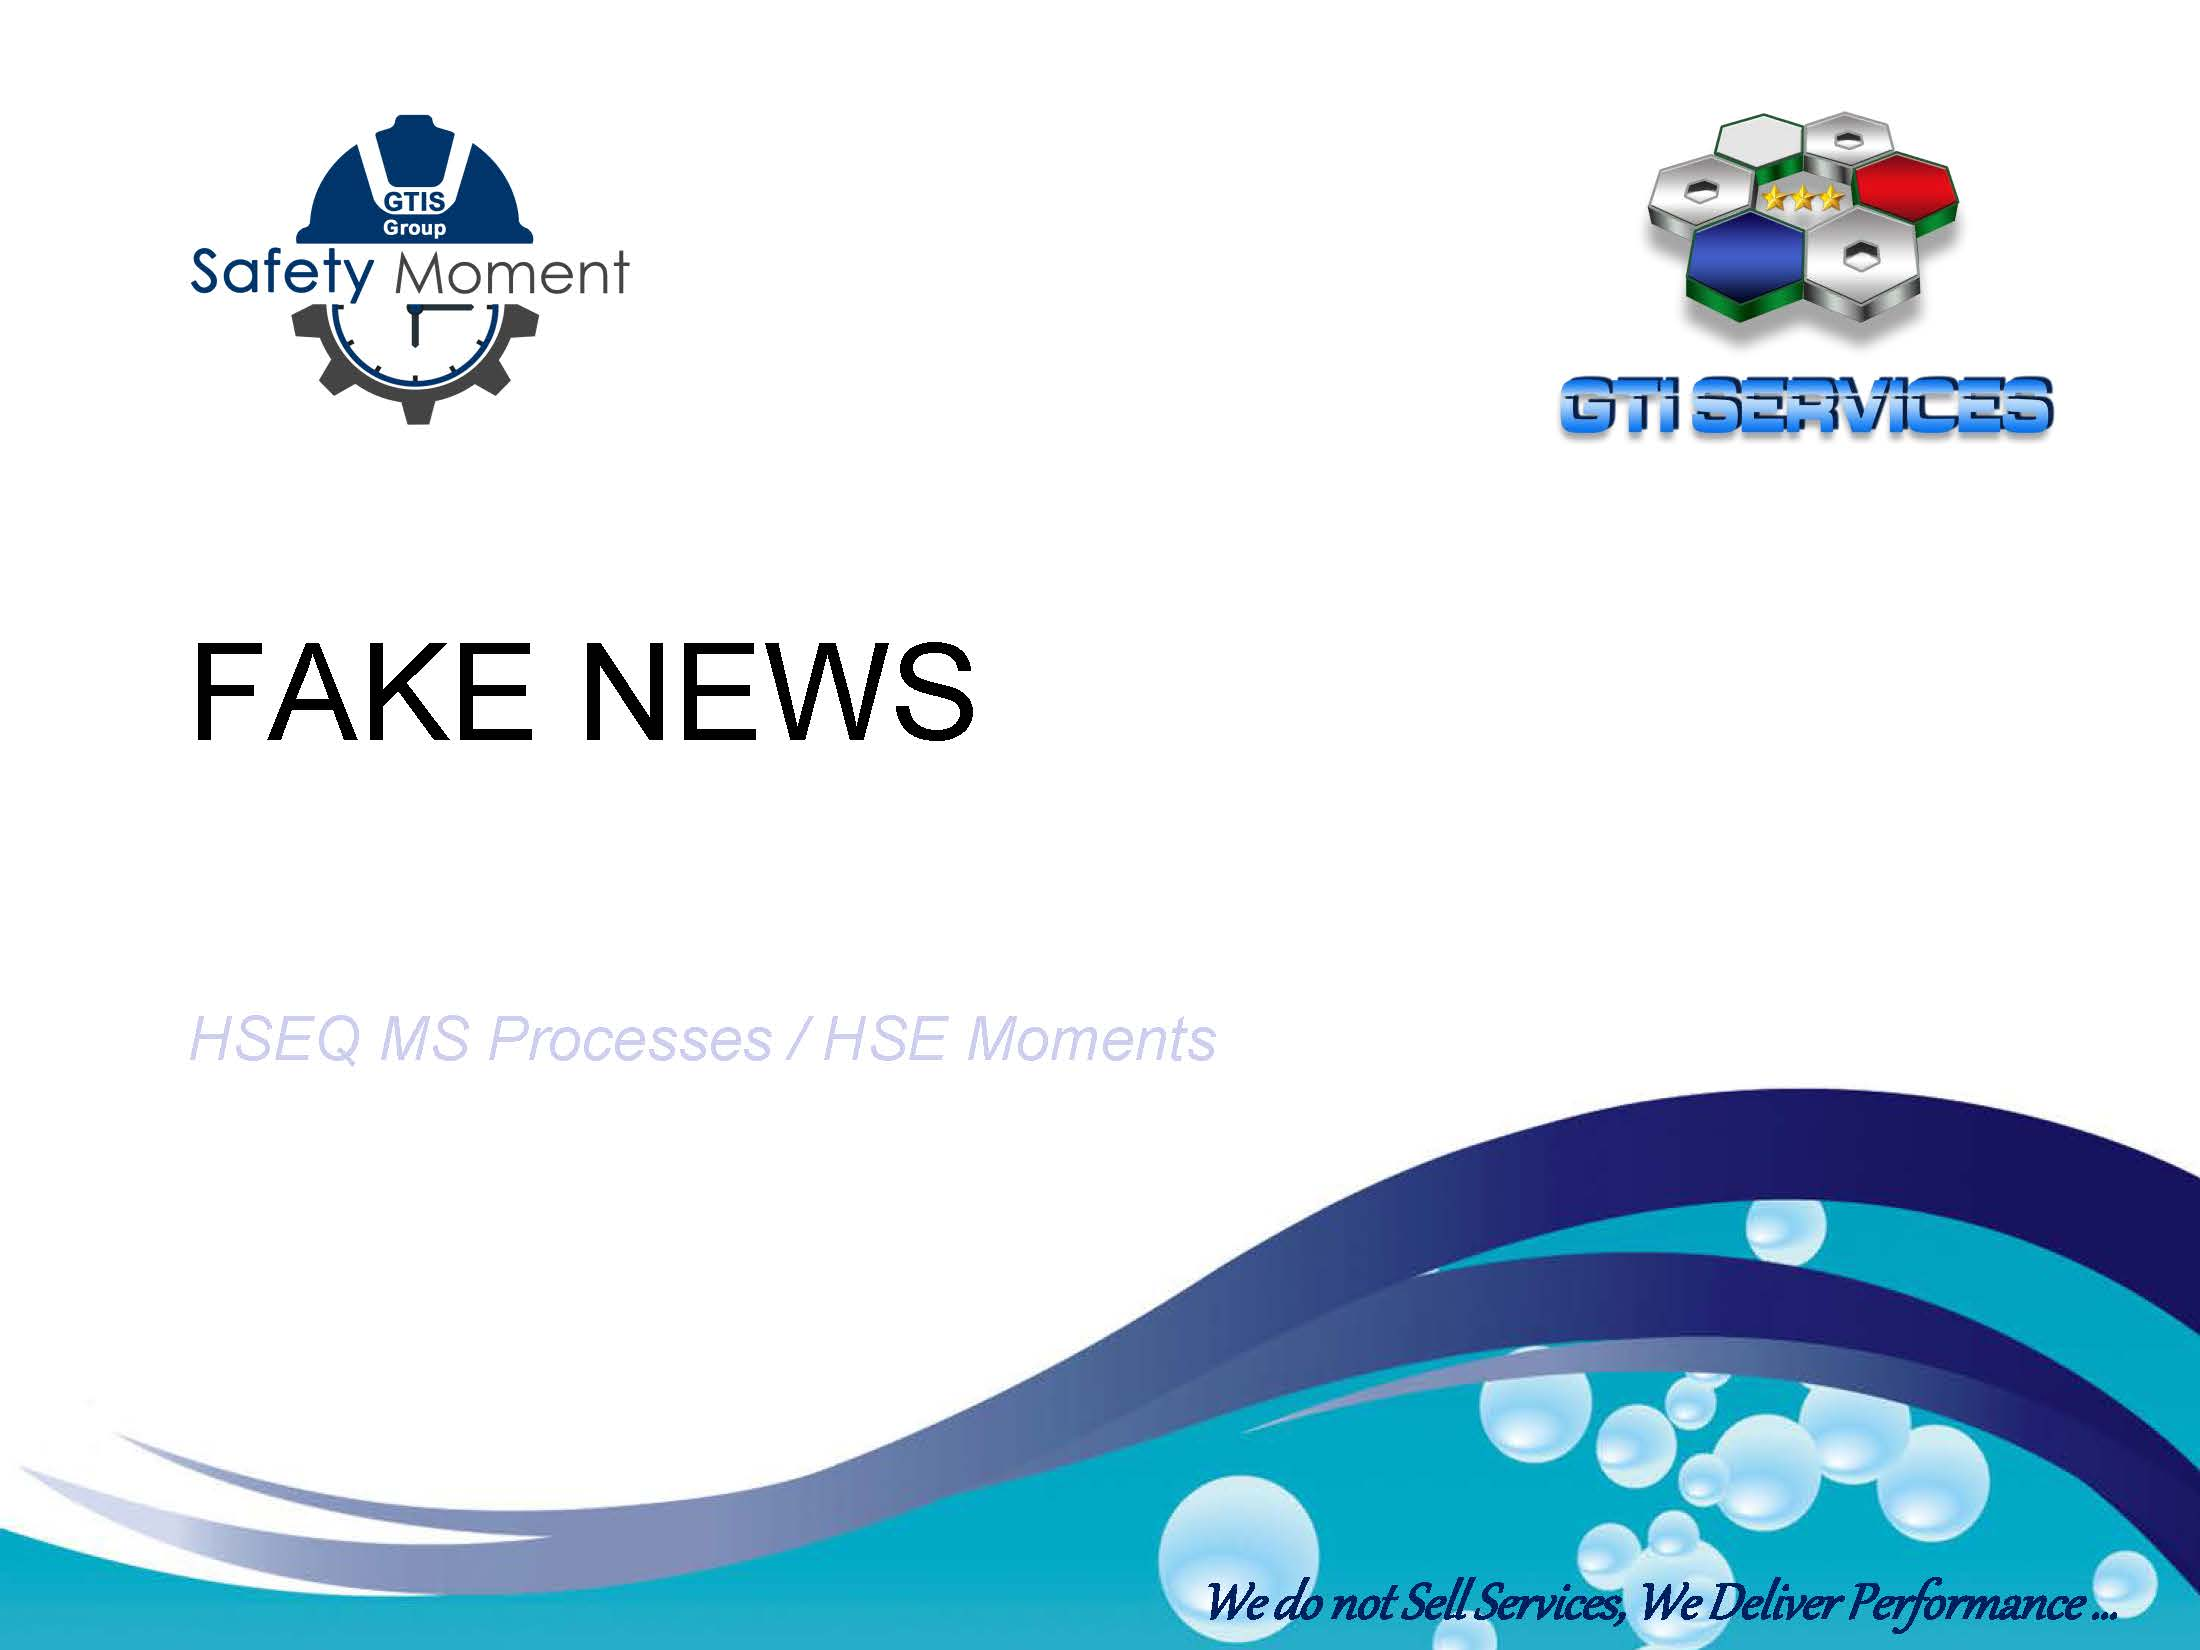 20191220 - Safety Moment - Fake News_Page_1